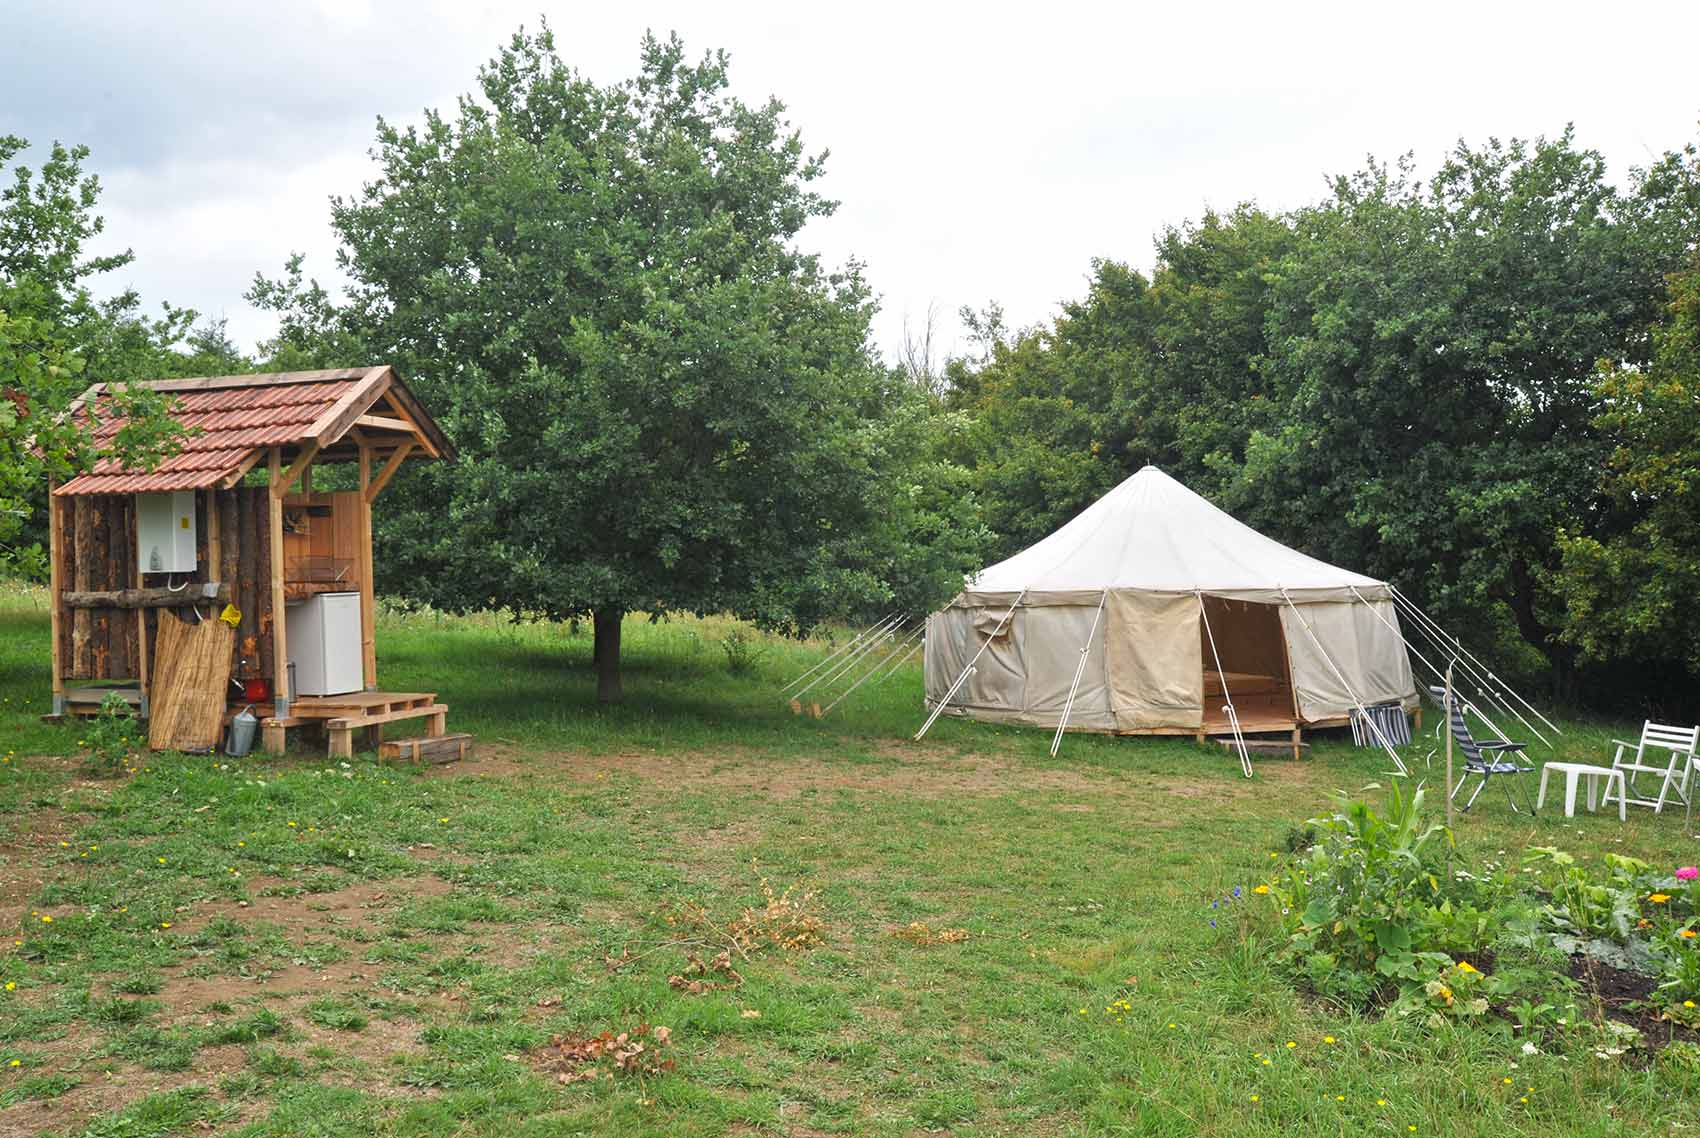 Camping grote ronde tent Brenazet